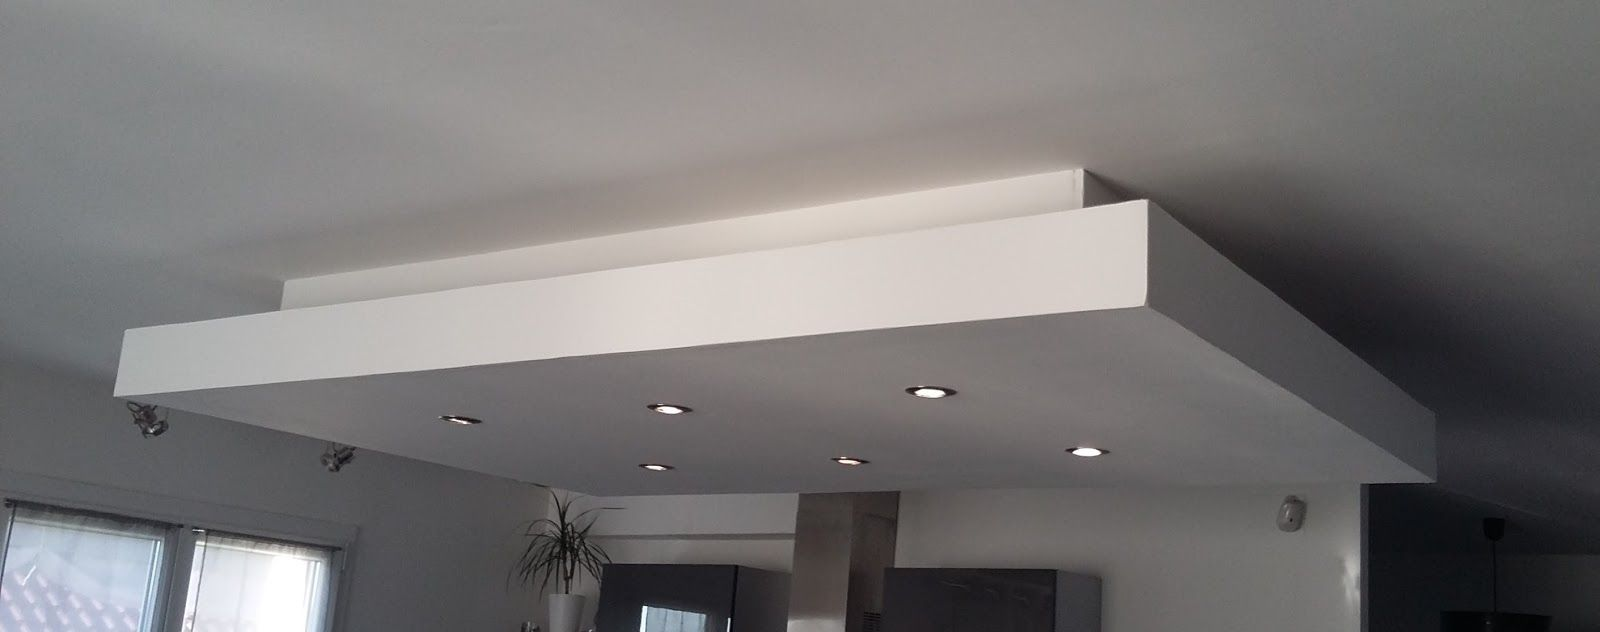 D roch plafond decaissement descendu suspendu placo for Deco faux plafond placo